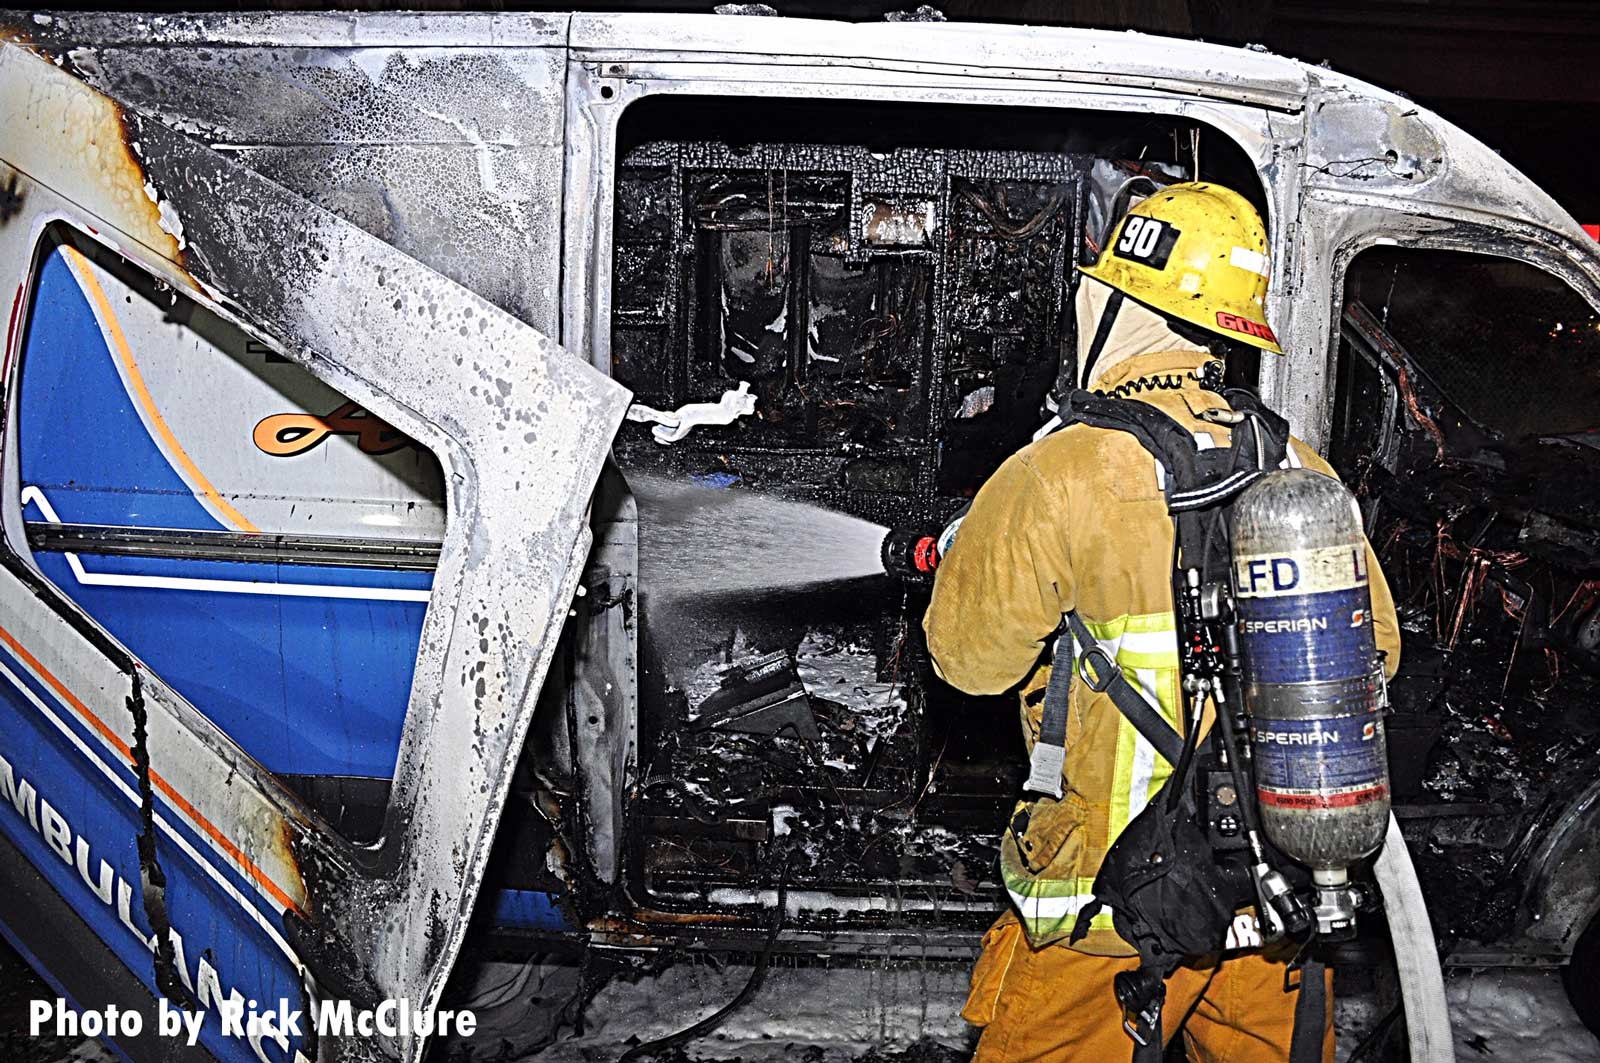 A firefighter aims a hoseline on the interior of the burned ambulance